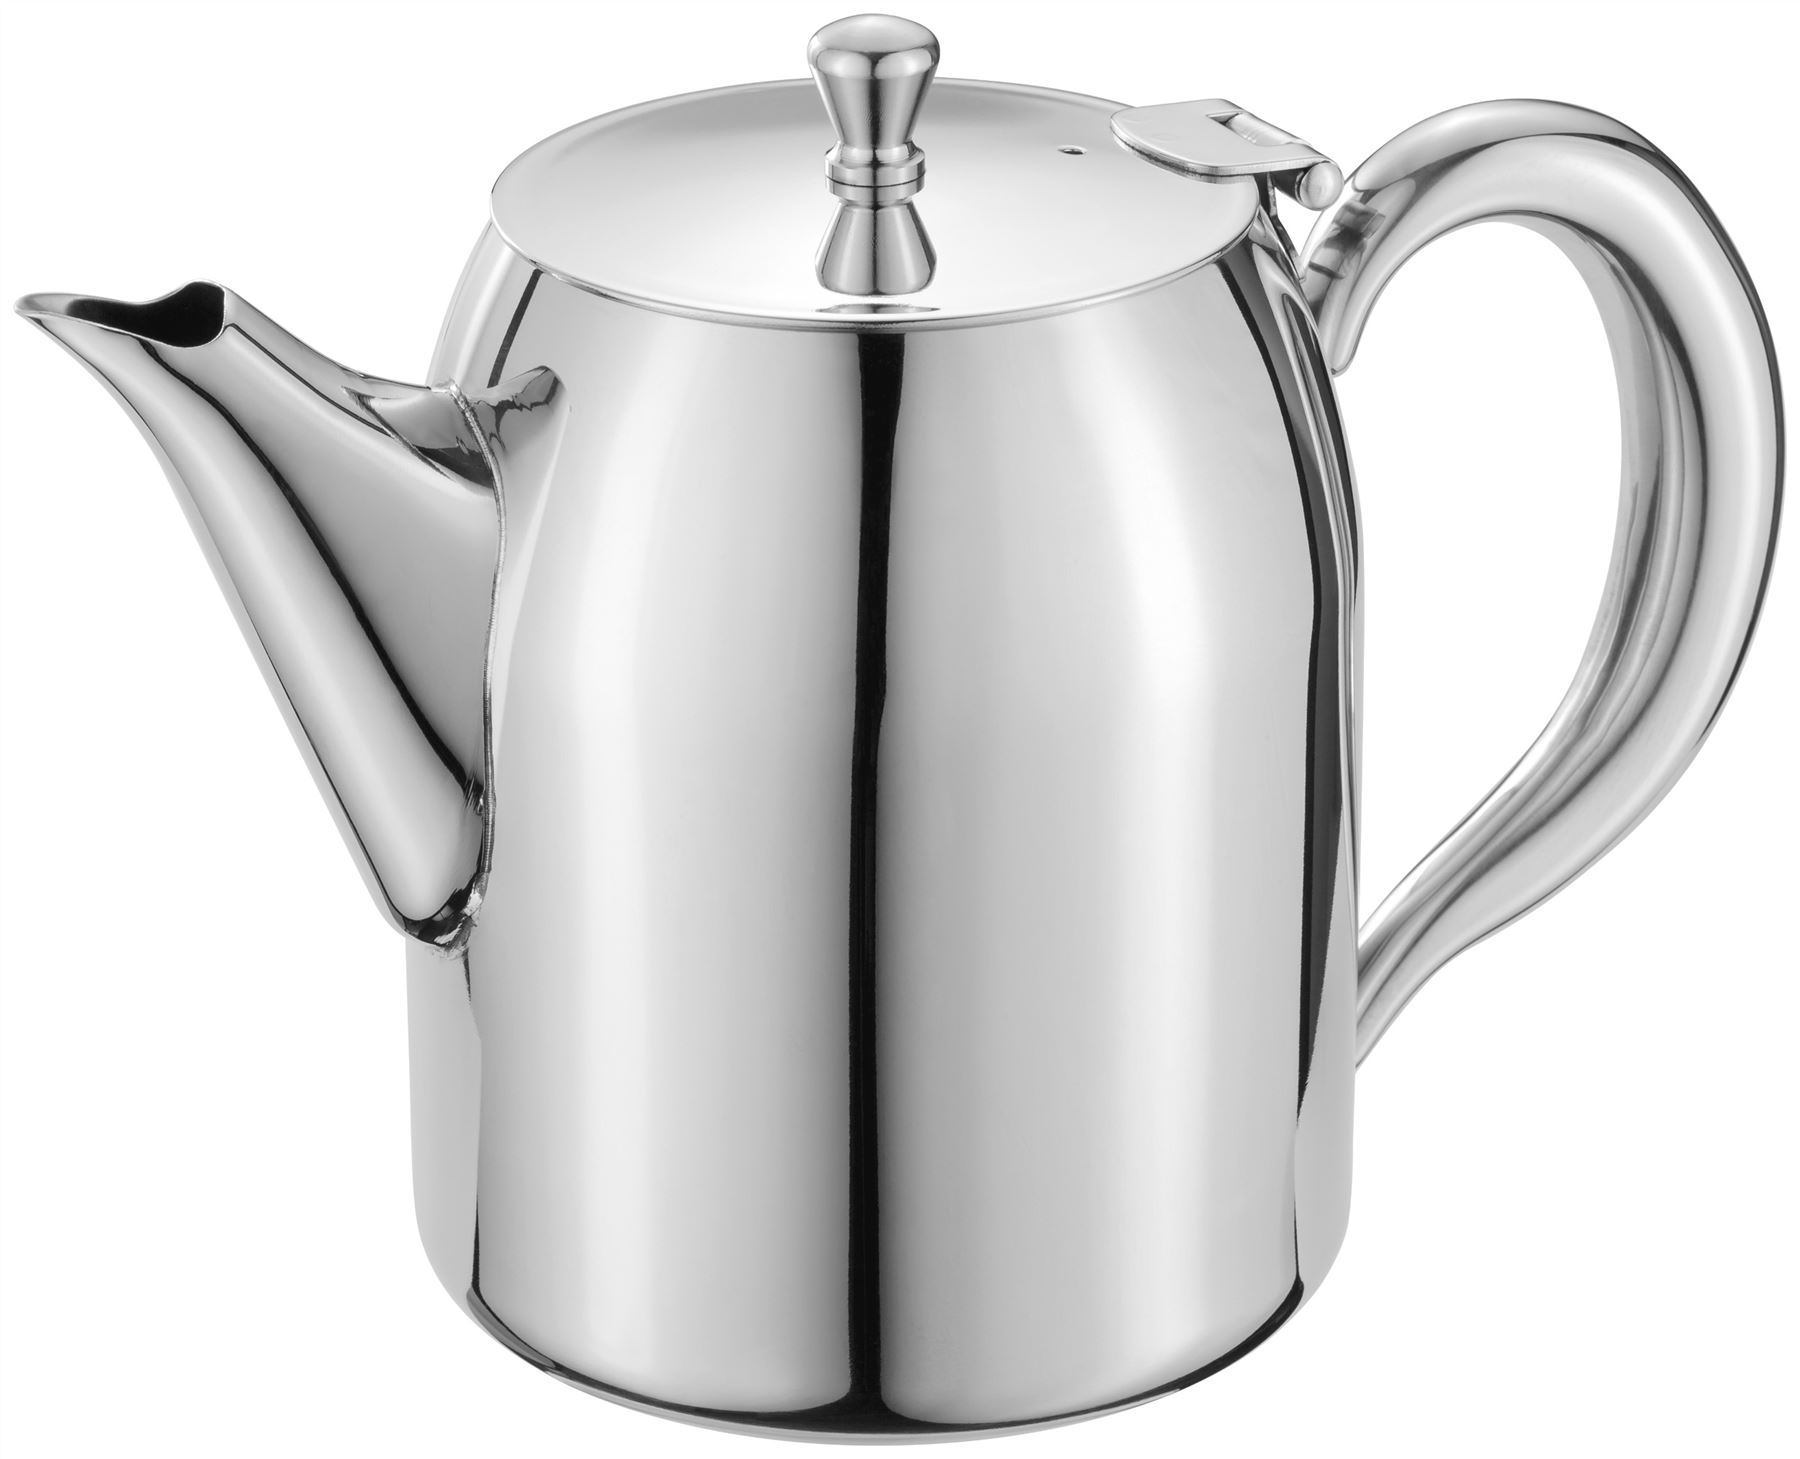 Judge teaware stainless steel teapots tea pots tall or - Cup stainless steel teapot ...